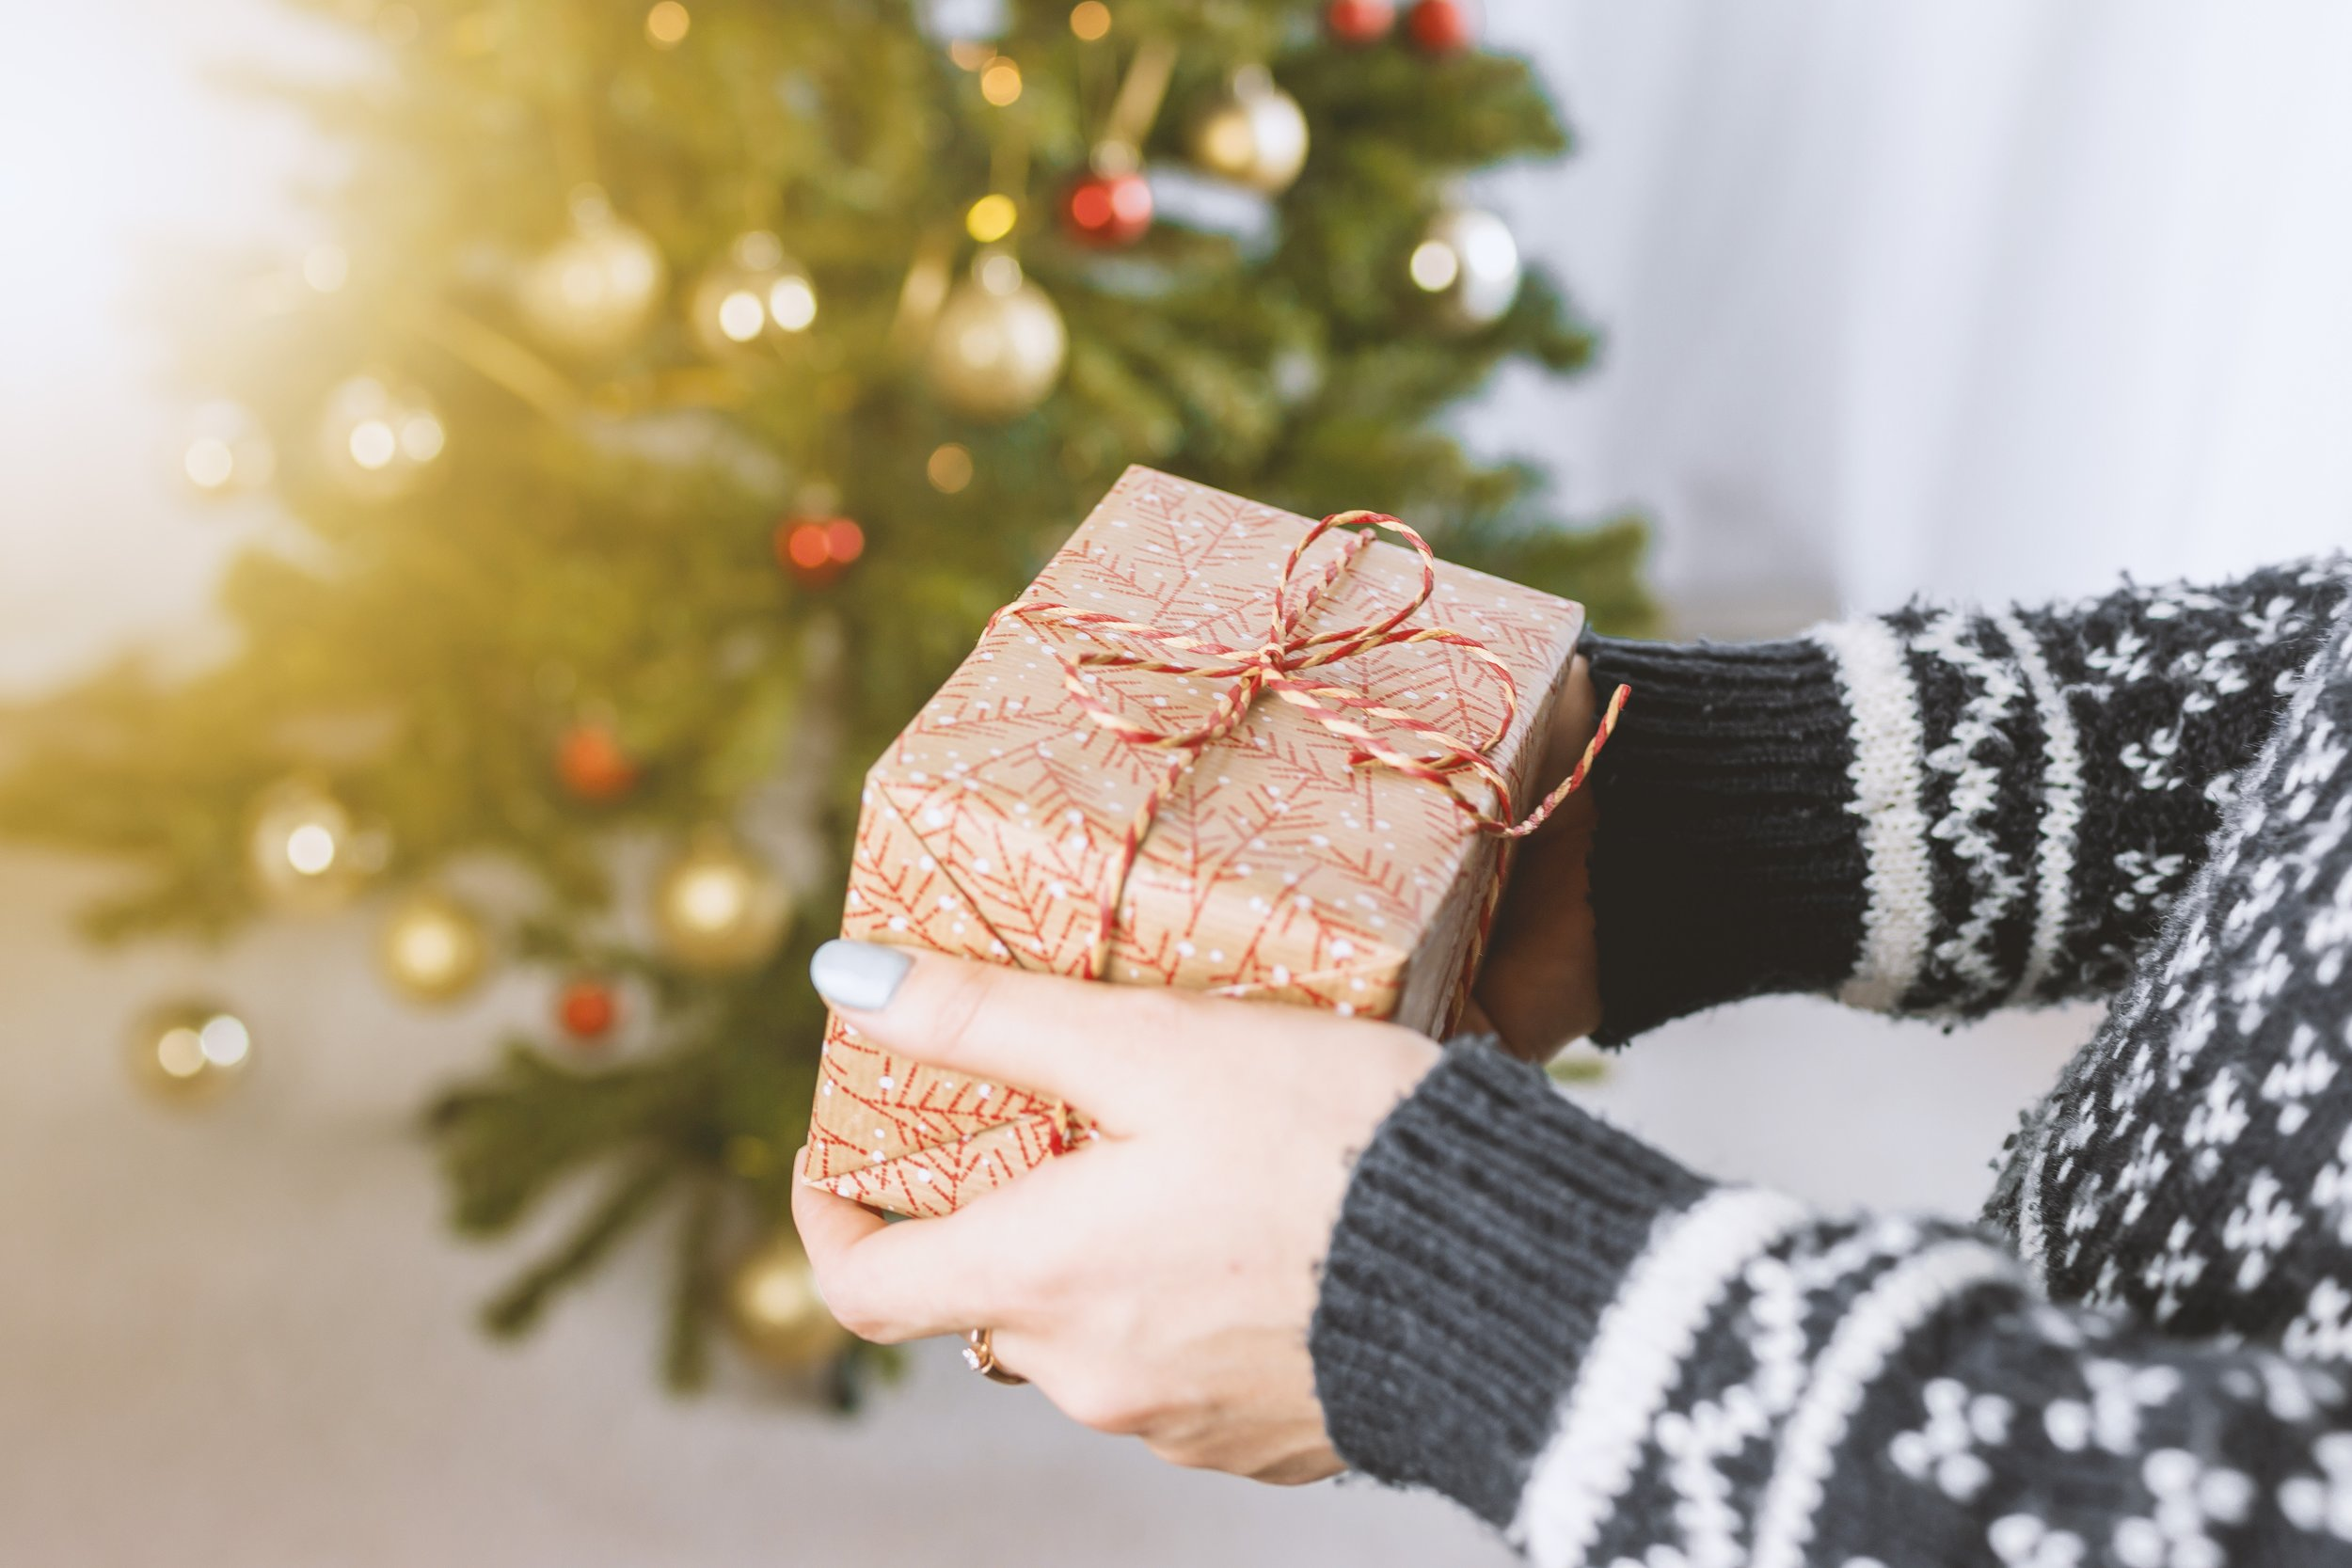 how to really save money during the holidays, how to save money during the holidays, how to save money, how to save money gift shopping, how to save money christmas holiday, how to budget for the holidays, the truth, save money.jpg